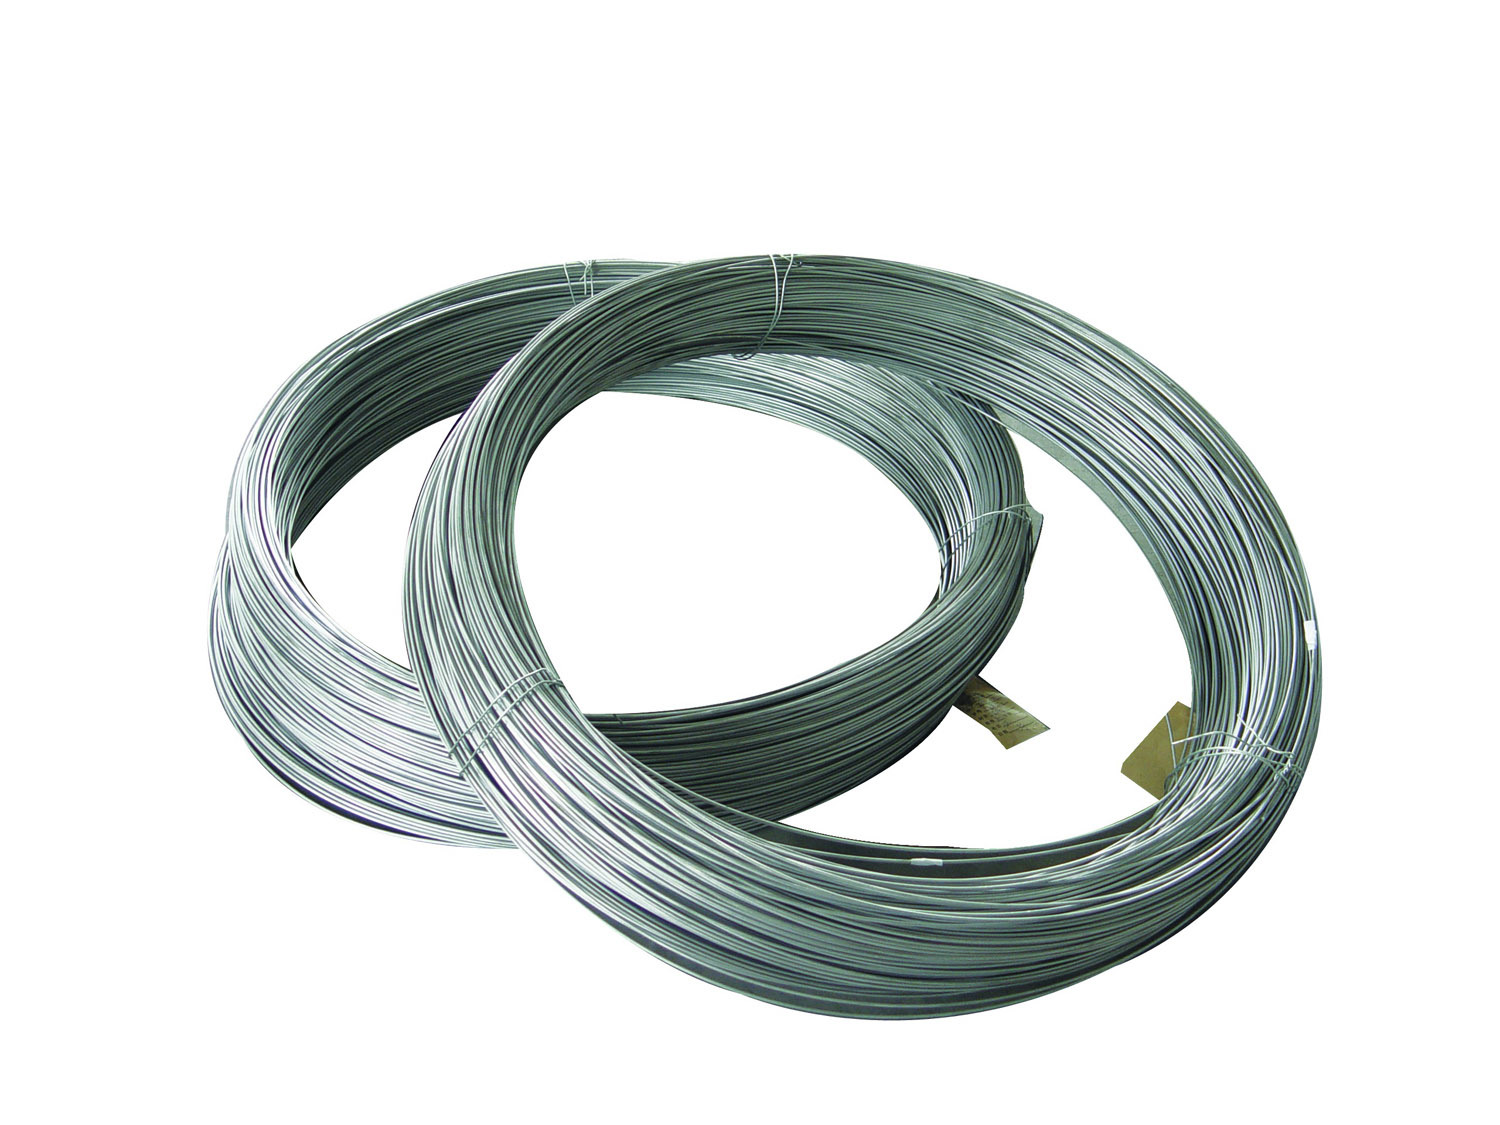 Stainless Steel Wire Product : China stainless steel wire s w